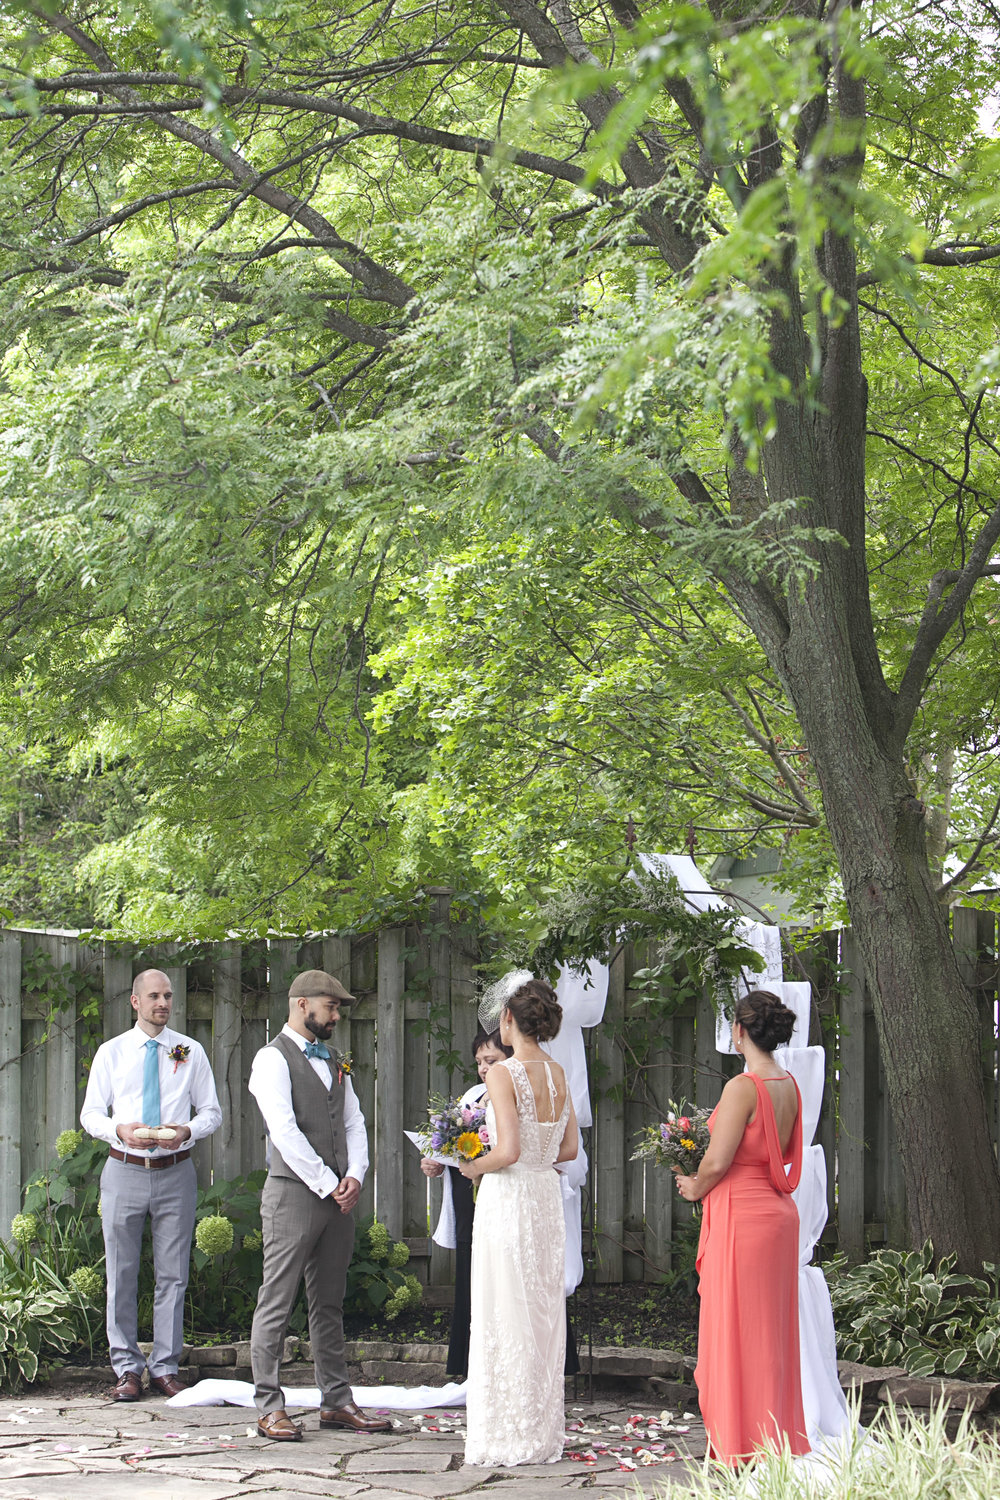 Outdoor ceremony in Stratford Ontario